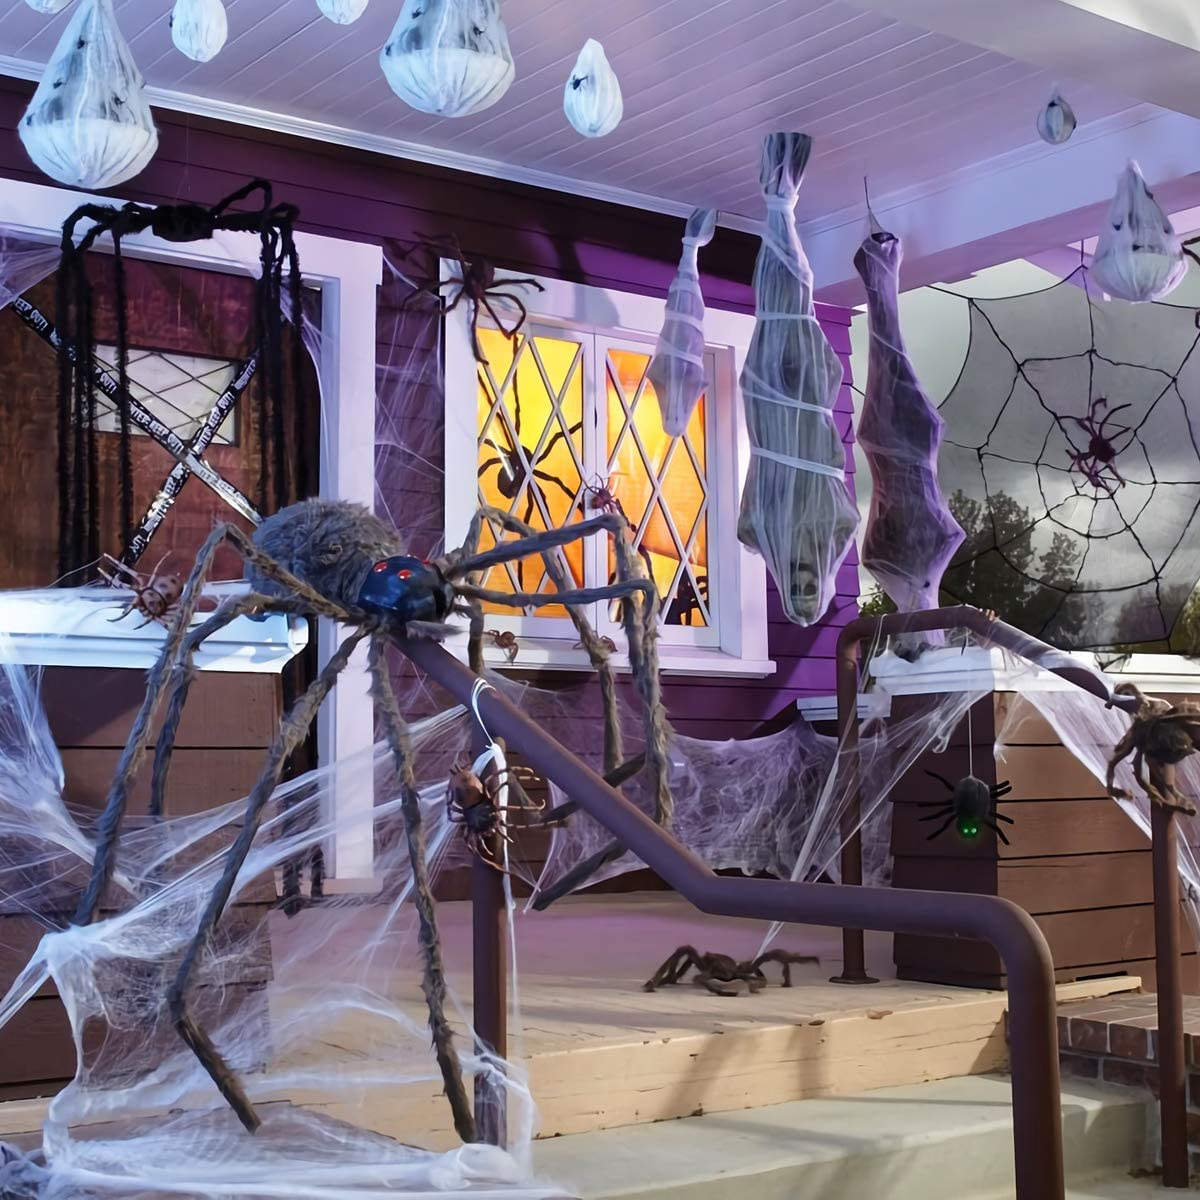 Halloween Spider Webs 1000 sqft Halloween Stretch Cobwebs Night Light Web Spider Webbing Indoor Outdoor Decoration